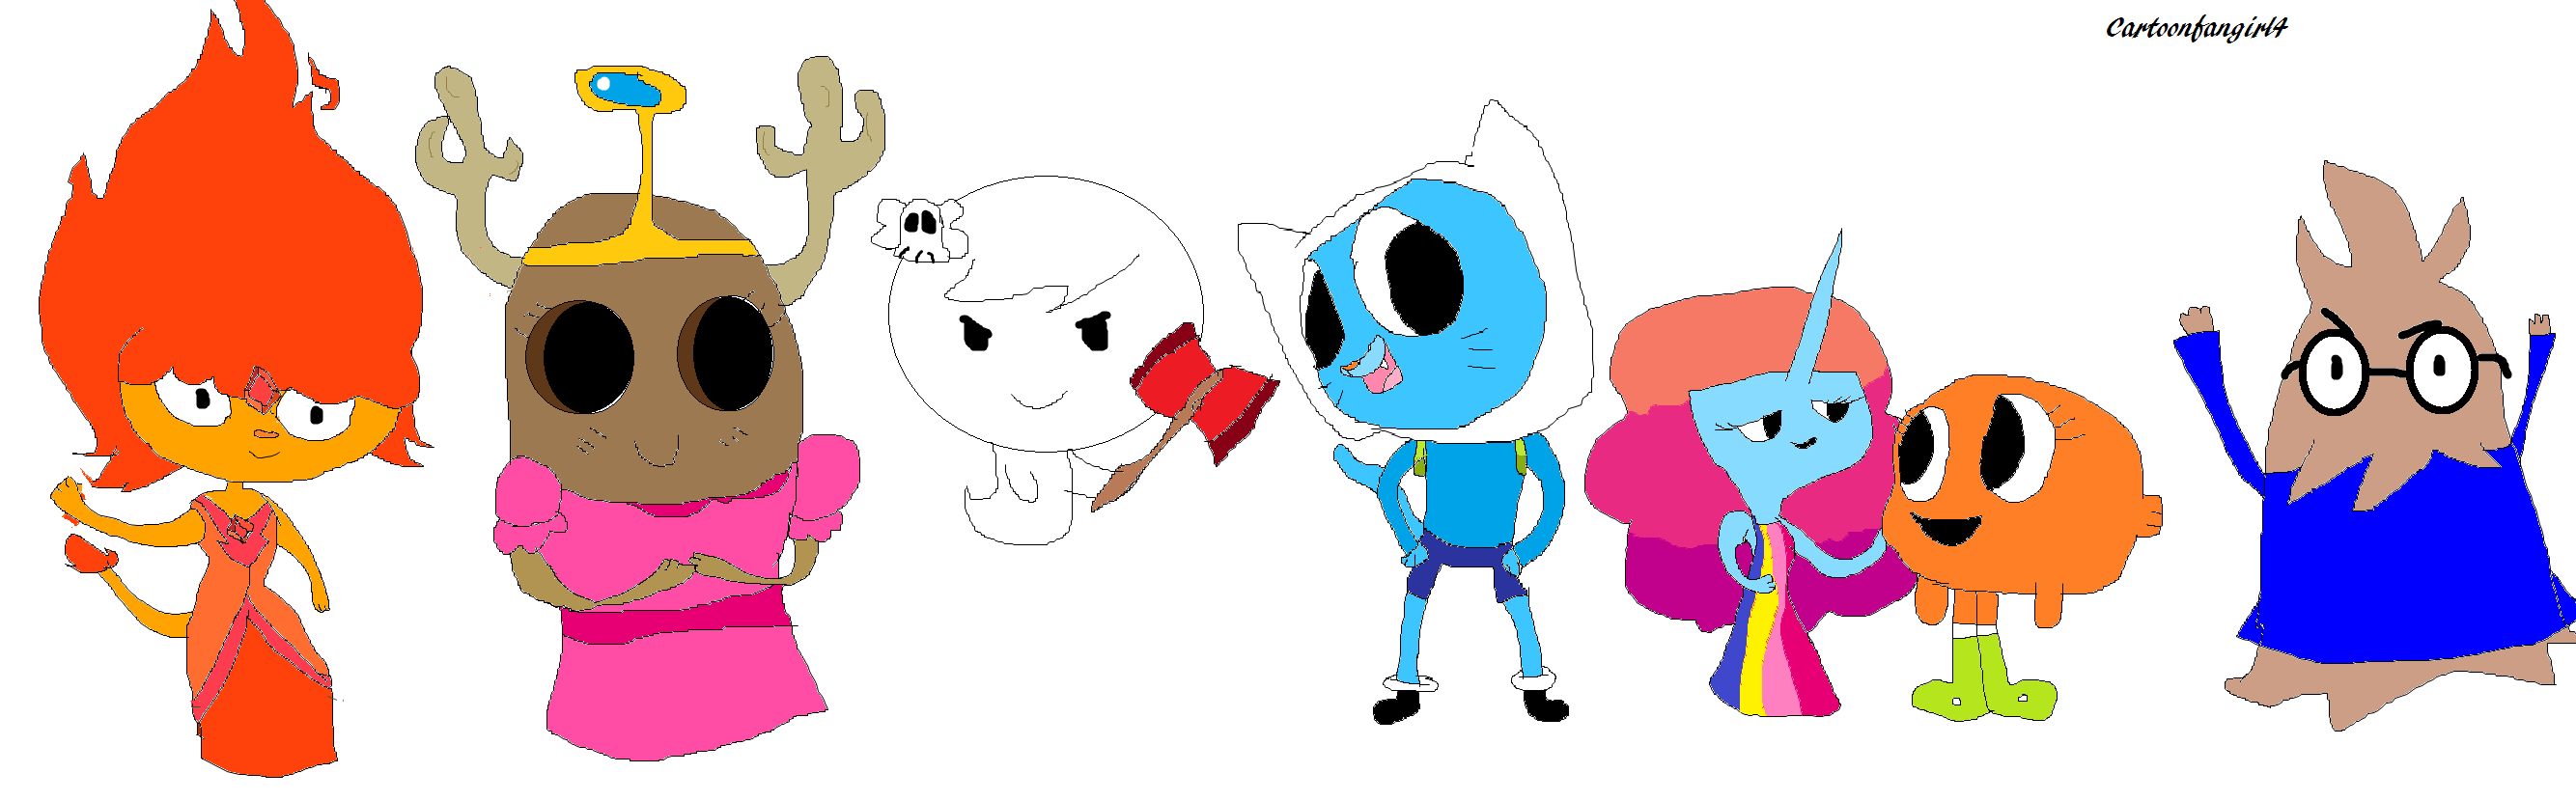 Adventure time with gumball and darwin by cartoonfangirl4-d4weon2.png